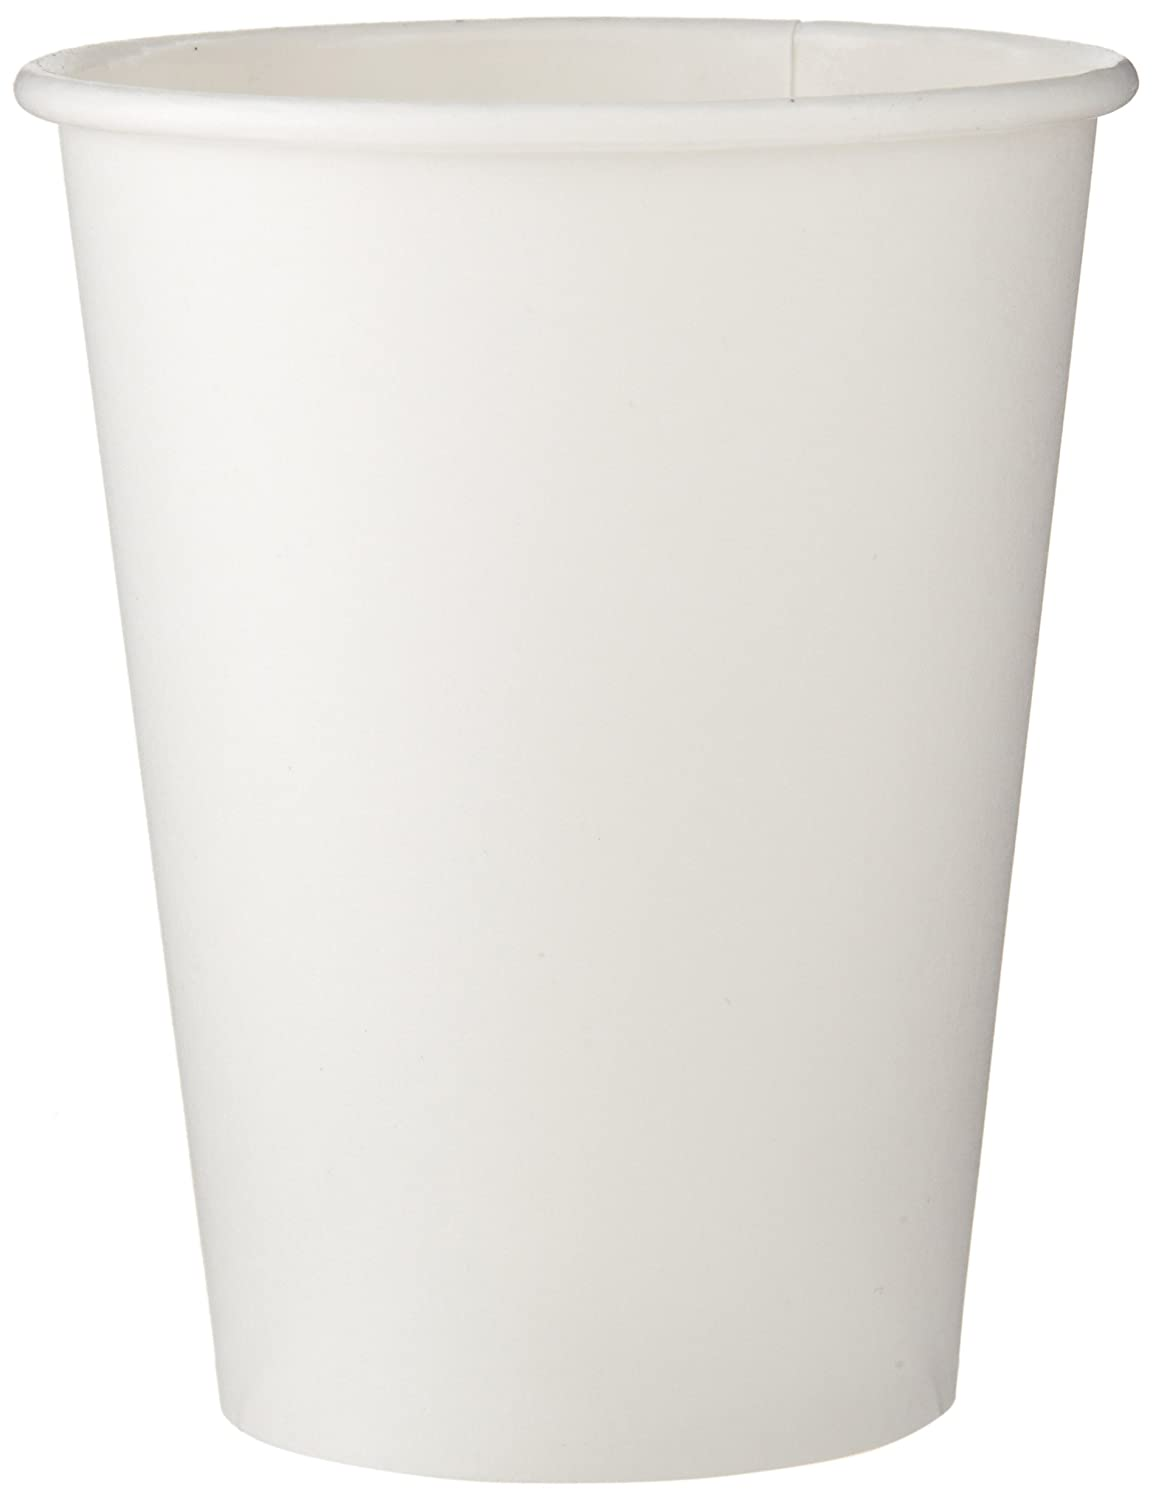 Dixie 8 oz. Paper Hot Coffee Cup by GP PRO (Georgia-Pacific), White, 2338W, 1,000 Count (50 Cups Per Sleeve, 20 Sleeves Per Case)